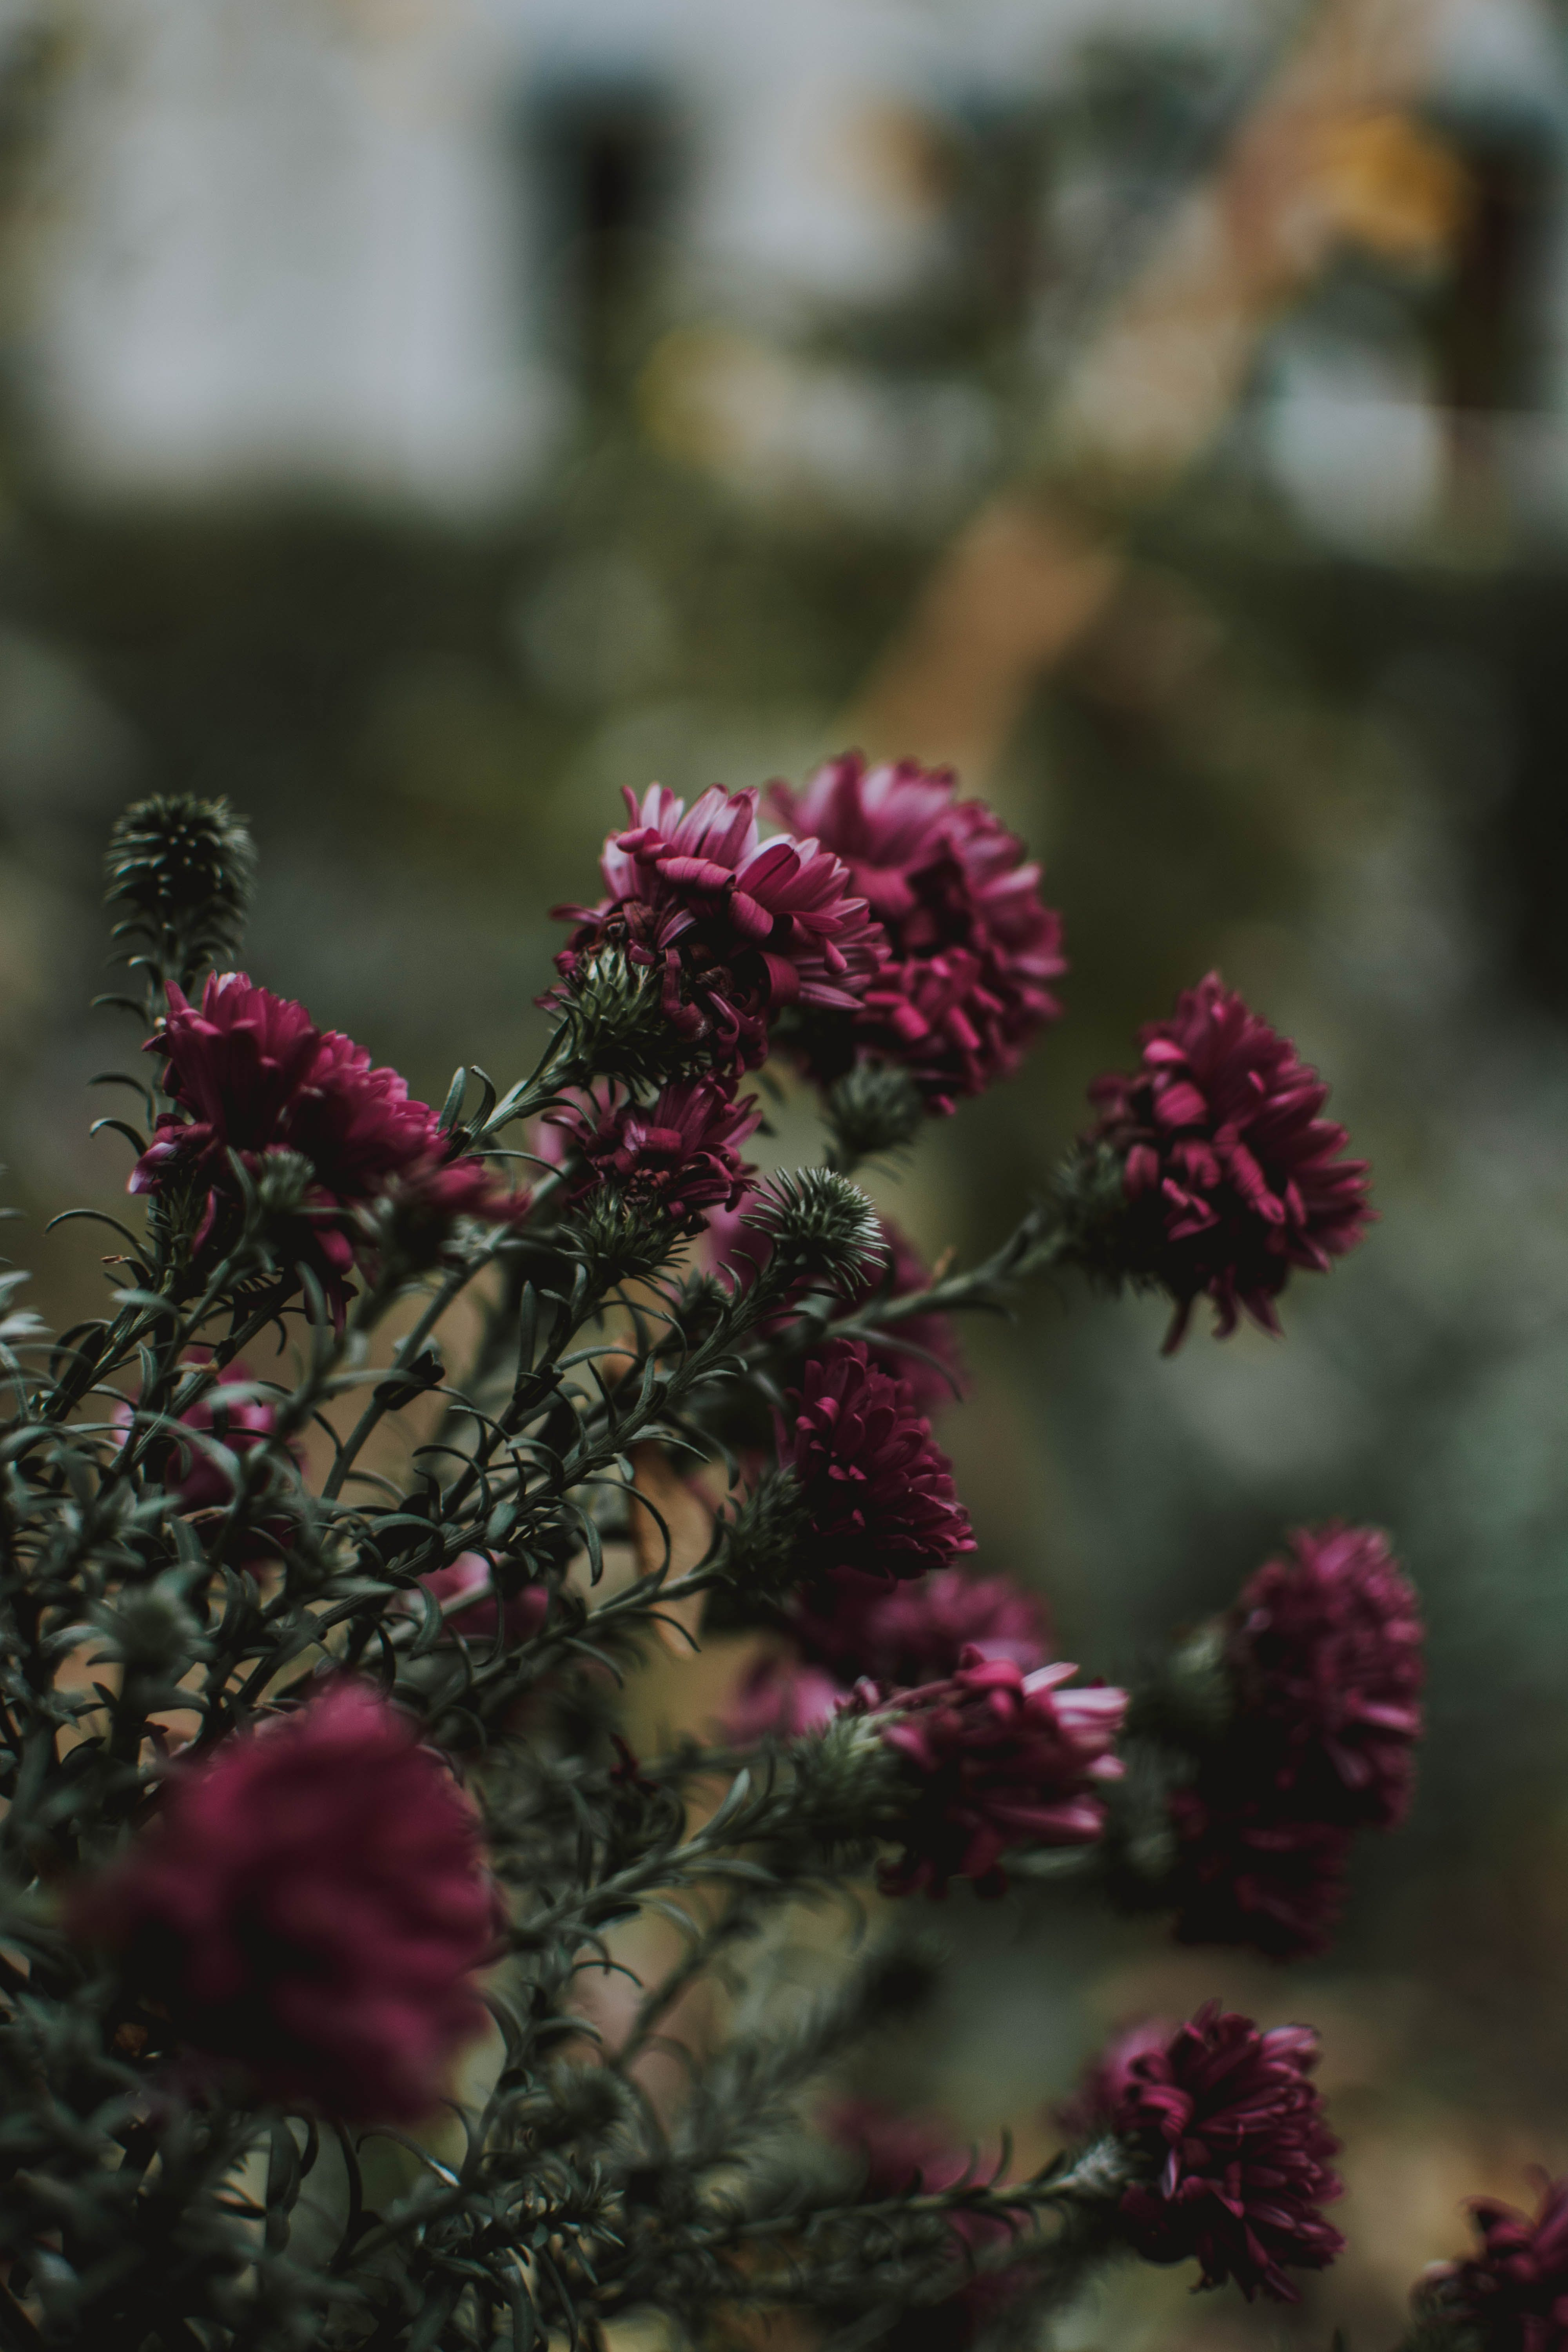 Pink Flowers In Tilt Shift Lens Photography